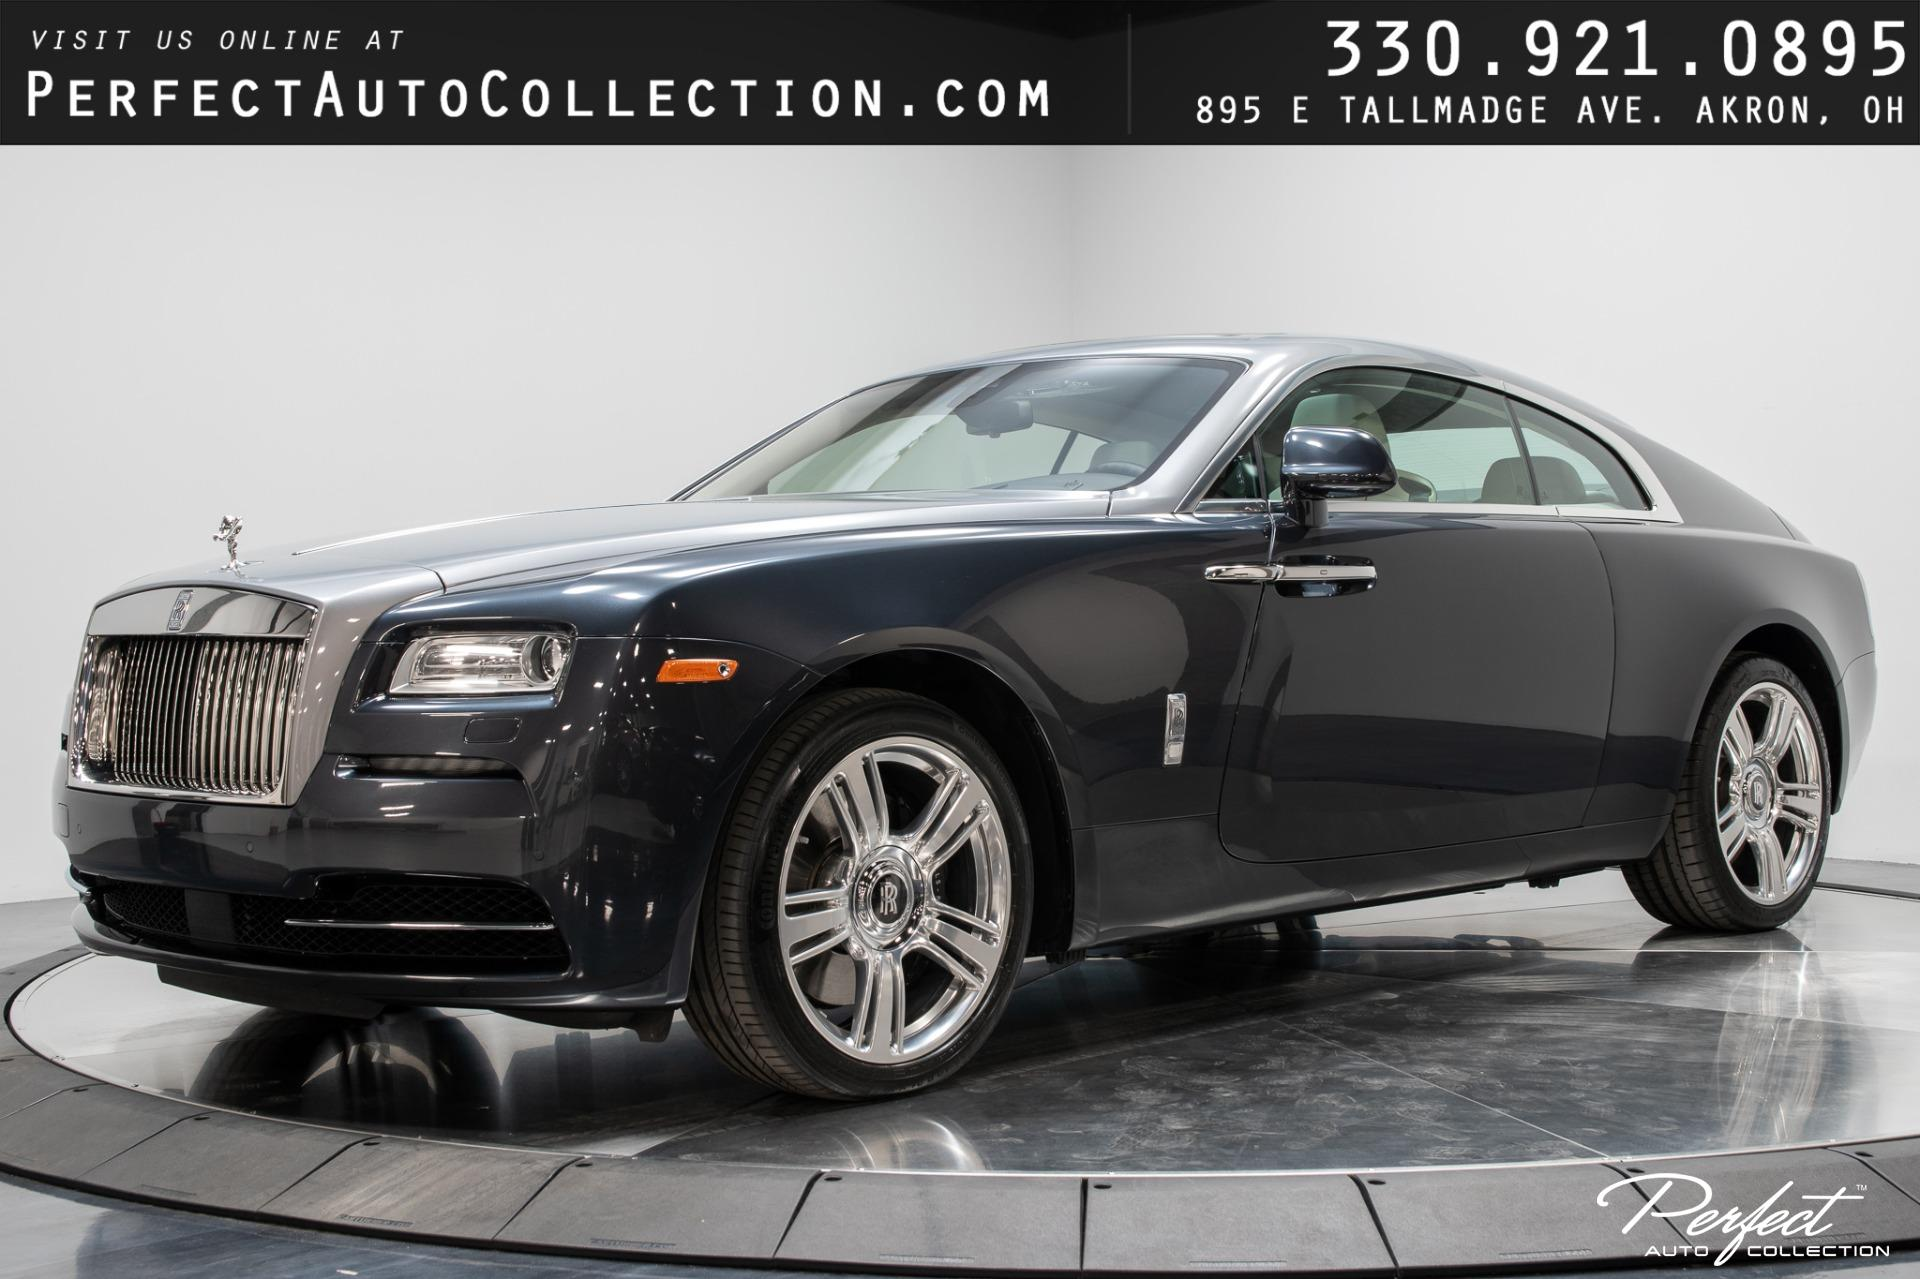 Used 2015 Rolls-Royce Wraith for sale $171,995 at Perfect Auto Collection in Akron OH 44310 1